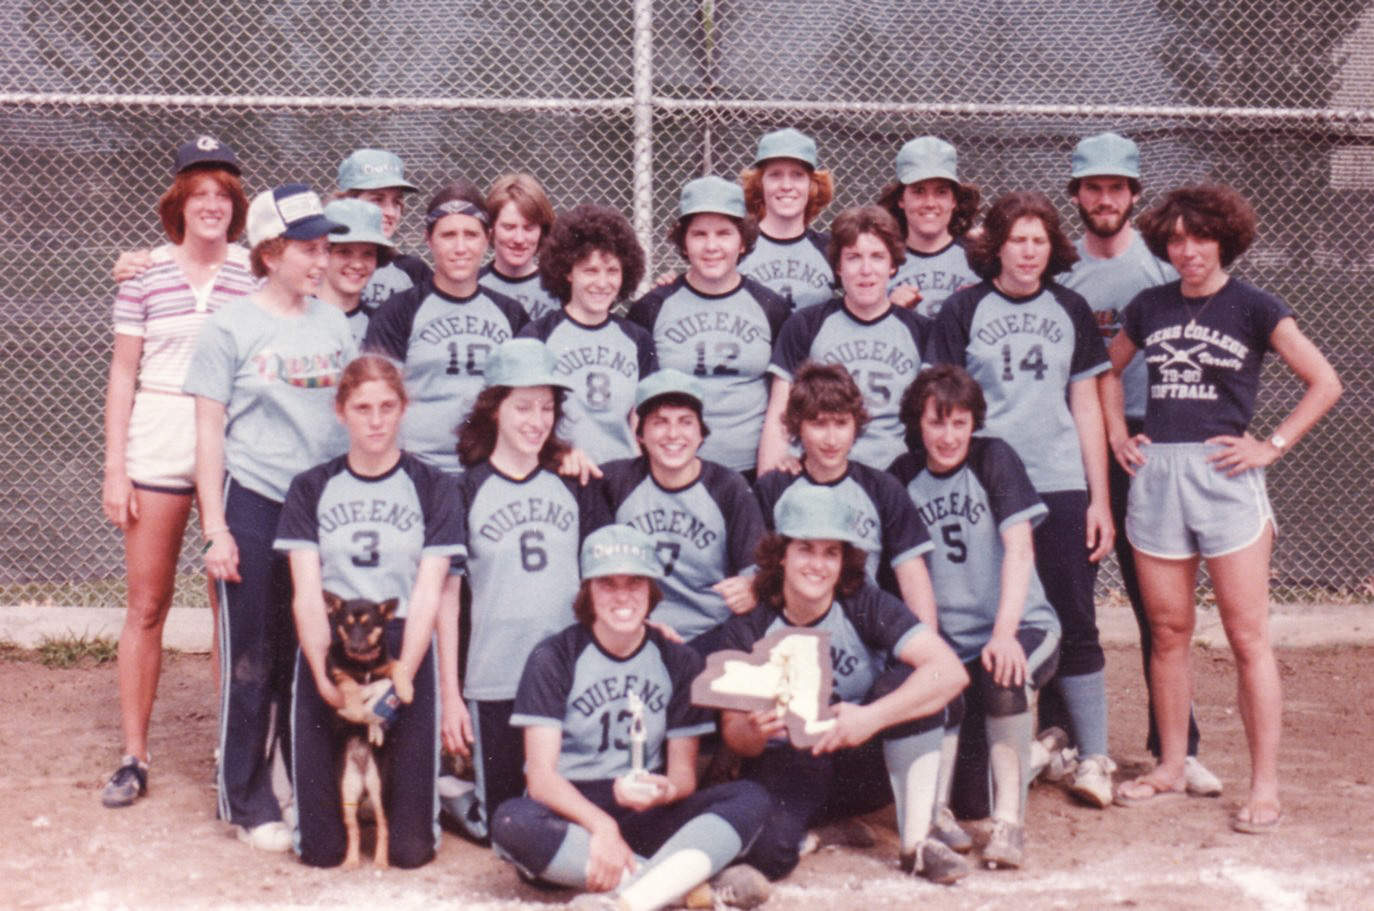 SOFTBALL State Champs 1980.jpg